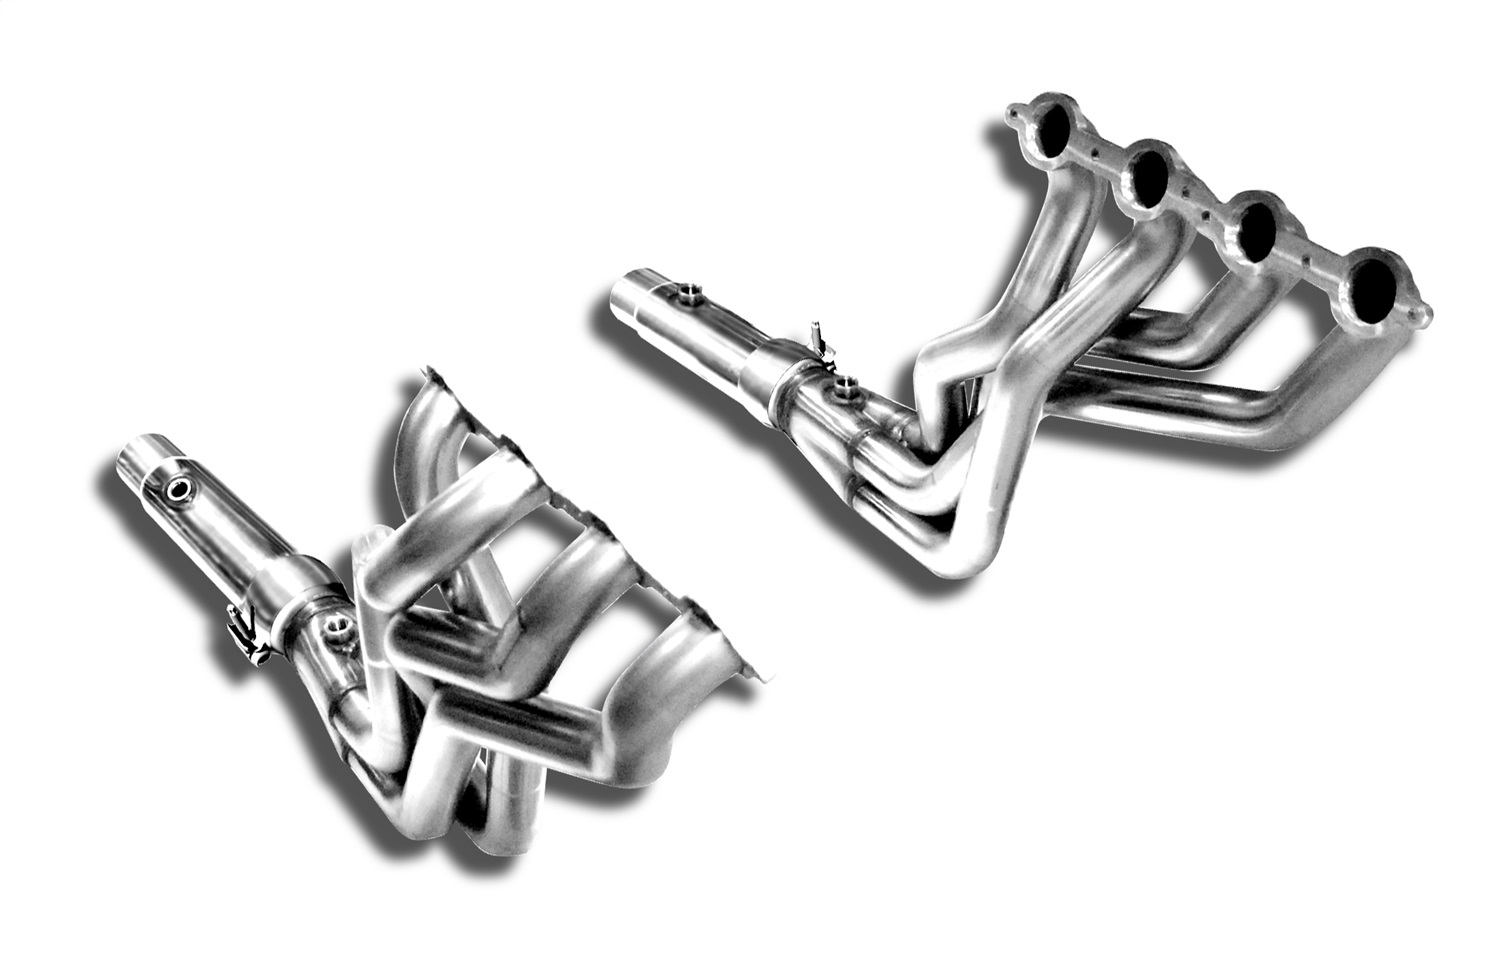 Kooks Custom Headers 2250H410 Stainless Steel Headers Fits 10-14 Camaro